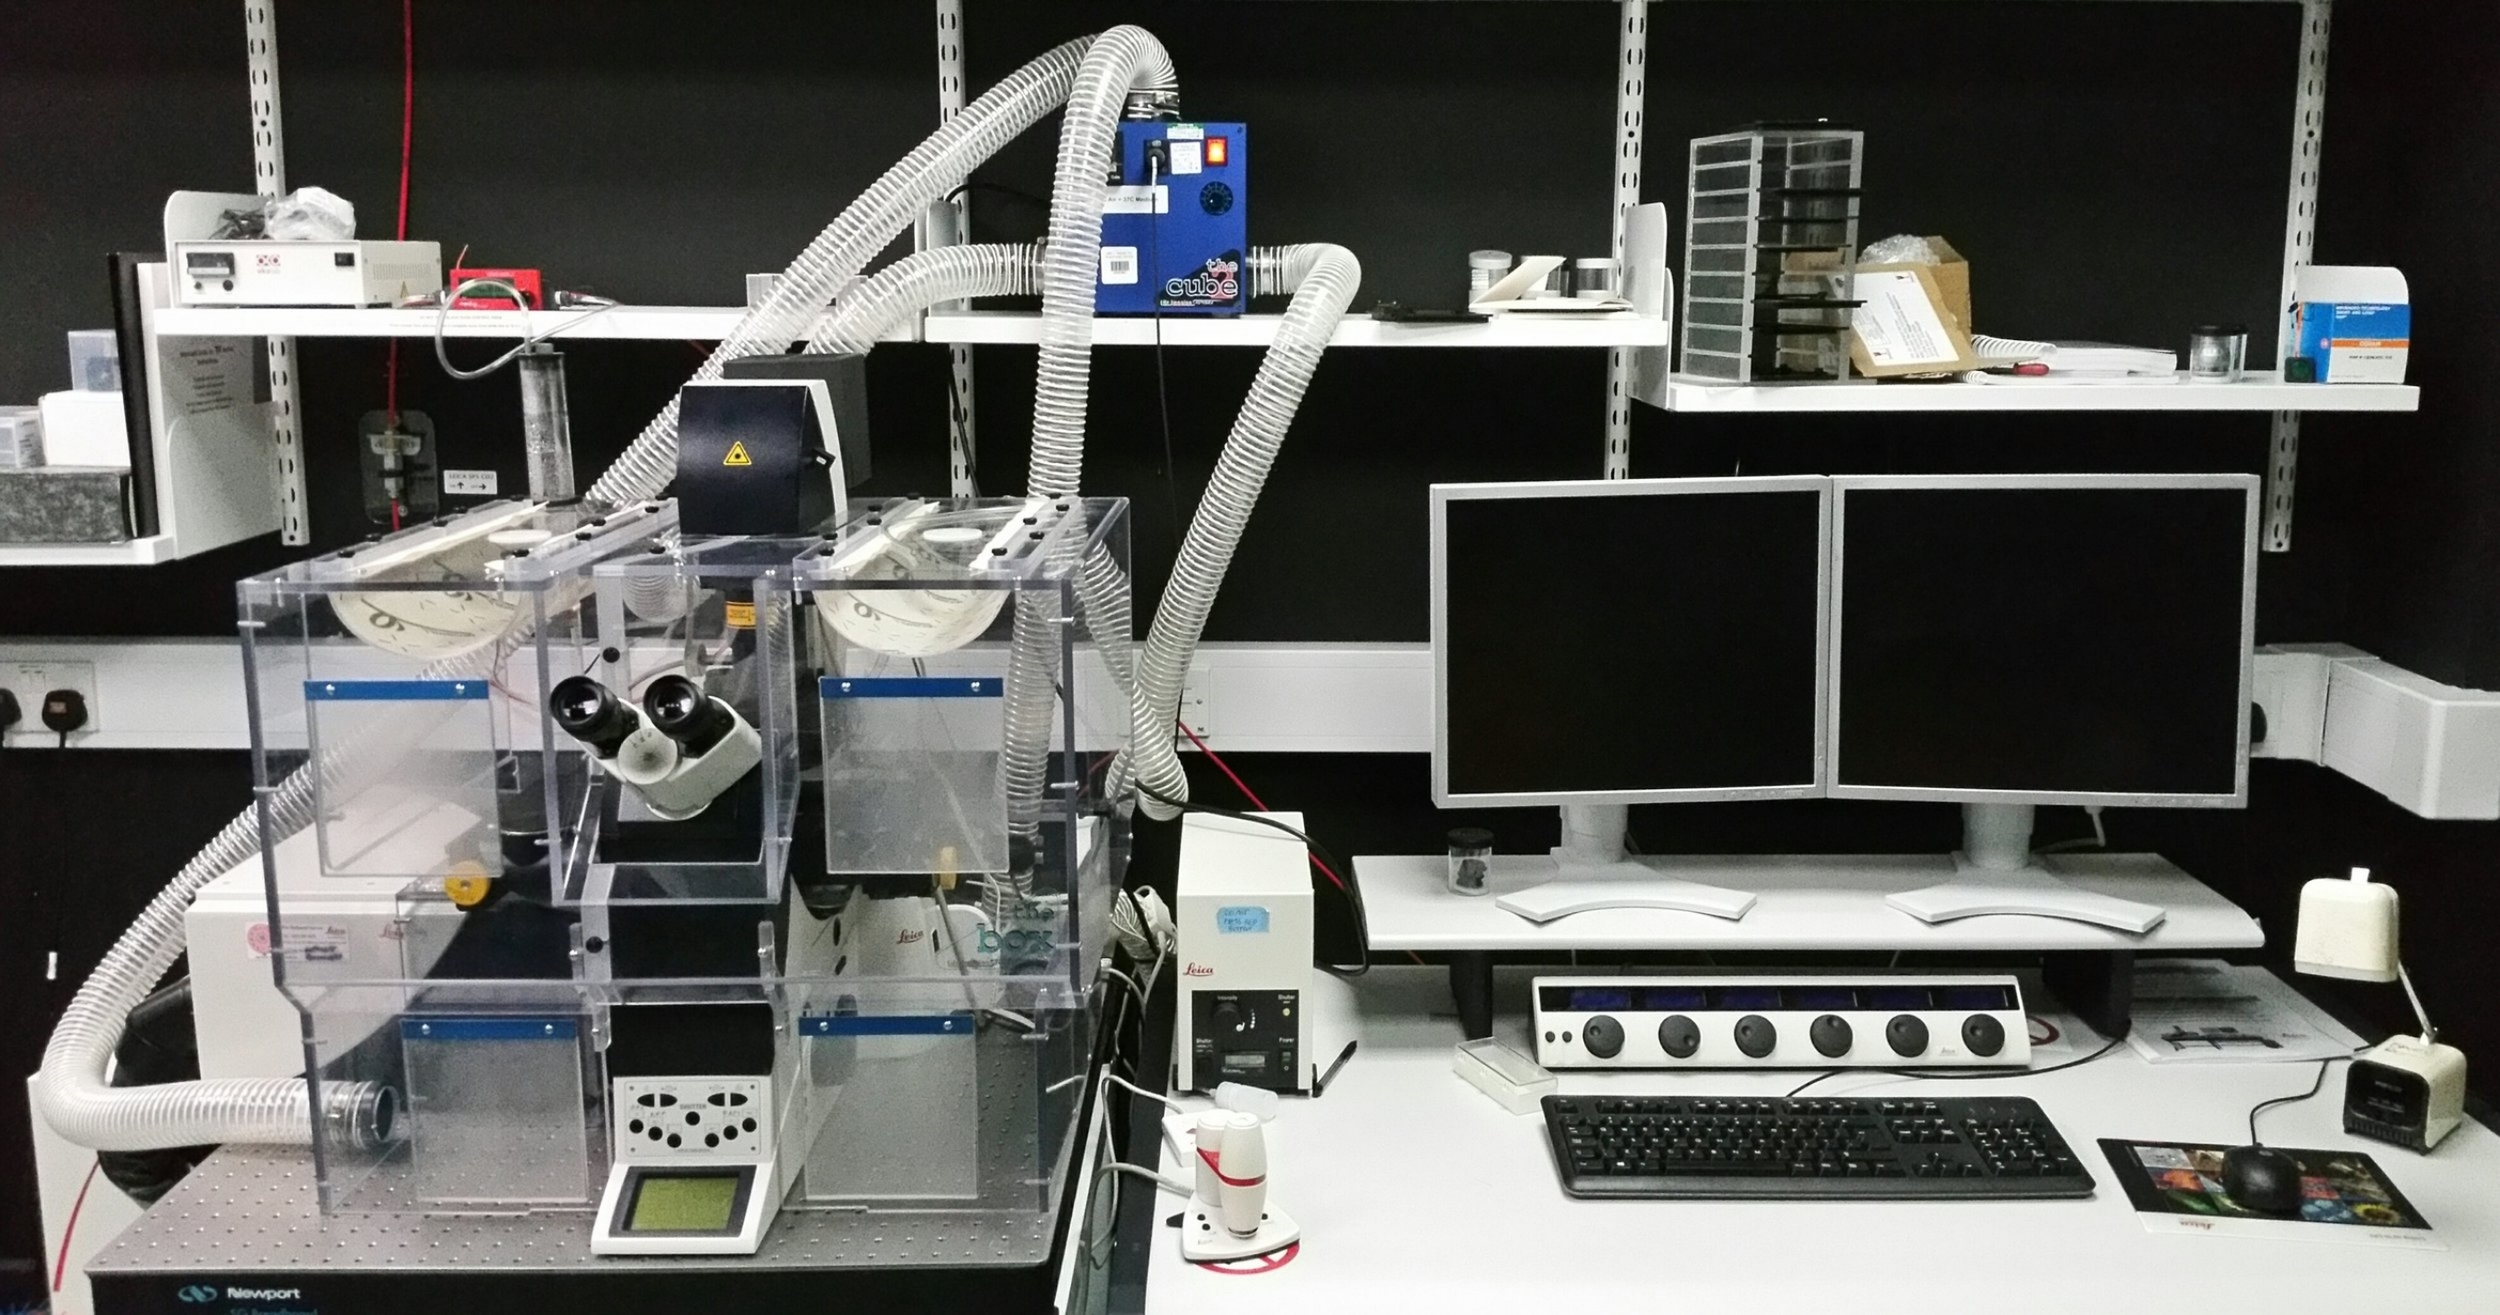 Cost   £30 p/h    Name  Bumblebee (Leica SP5)   Room  CG13   Manuals:       Confocal  or  FCS    Modality  Point scanning confocal   Fluorophores  DAPI, CFP, GFP, YFP, RFP, AF647 +BF   Manufacturer  Leica   Objectives  4x, 10x, 20x, 40x, 63x   Software  LAS-AF   Application  Fixed, live, 3D and tile imaging, FCS  Spectral unmixing, FRET + FRAP   Offline viewing software:   Here    Technical specs for publications:   Here